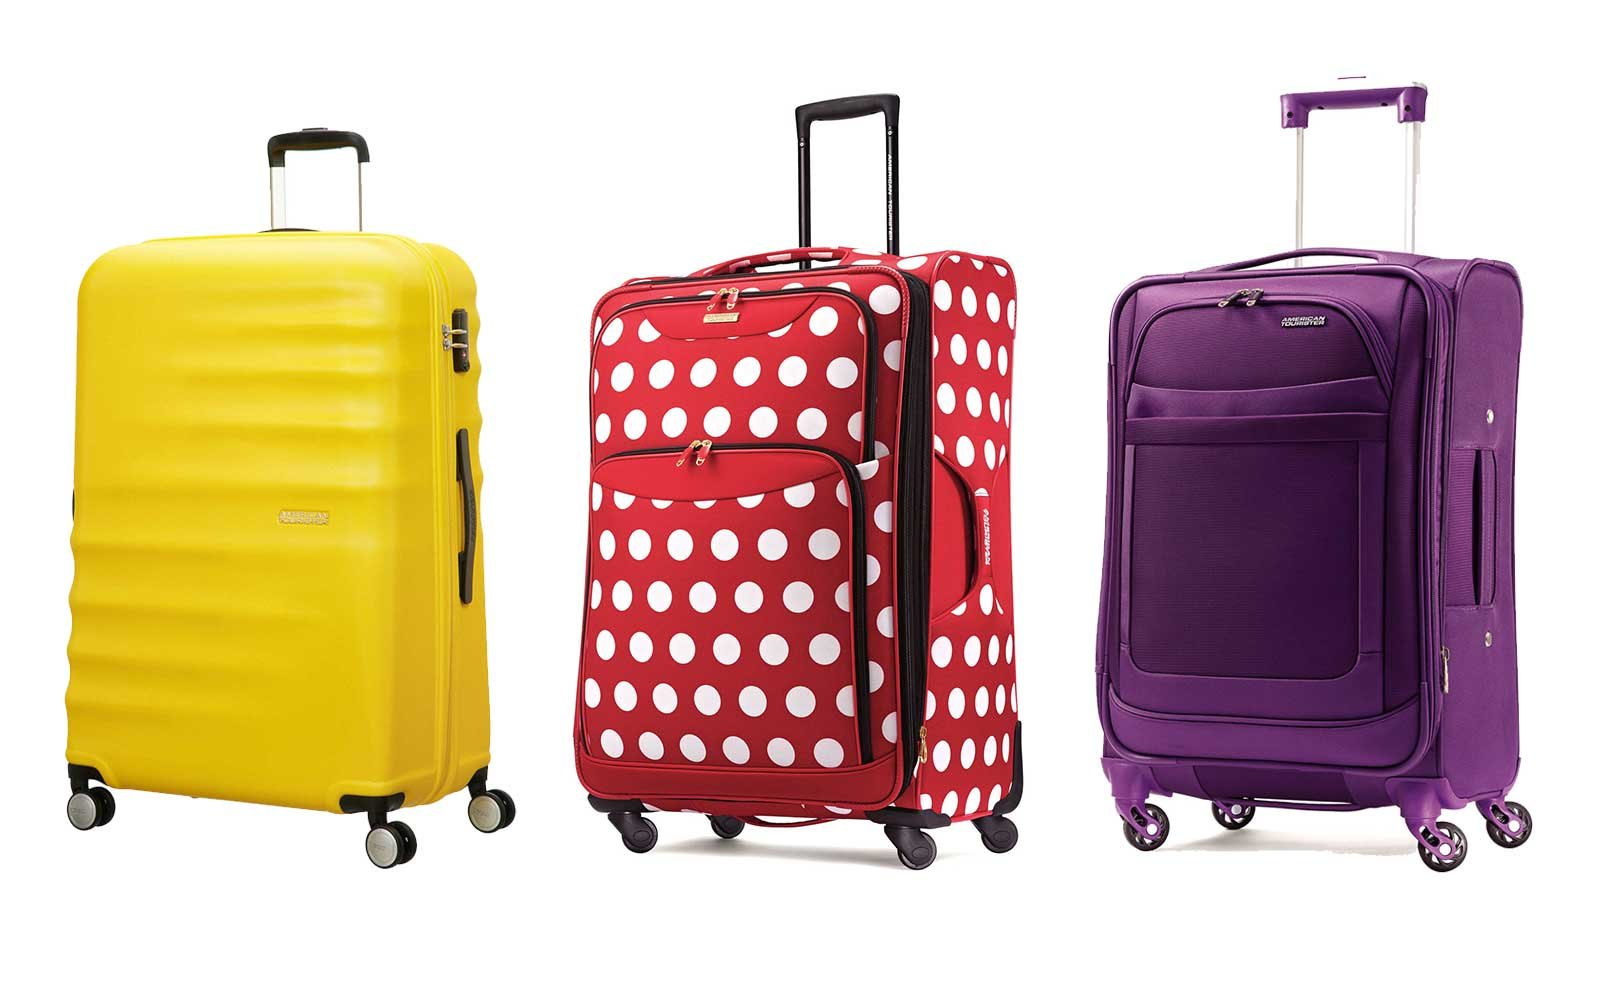 Suitcase American Tourister: User Reviews 17